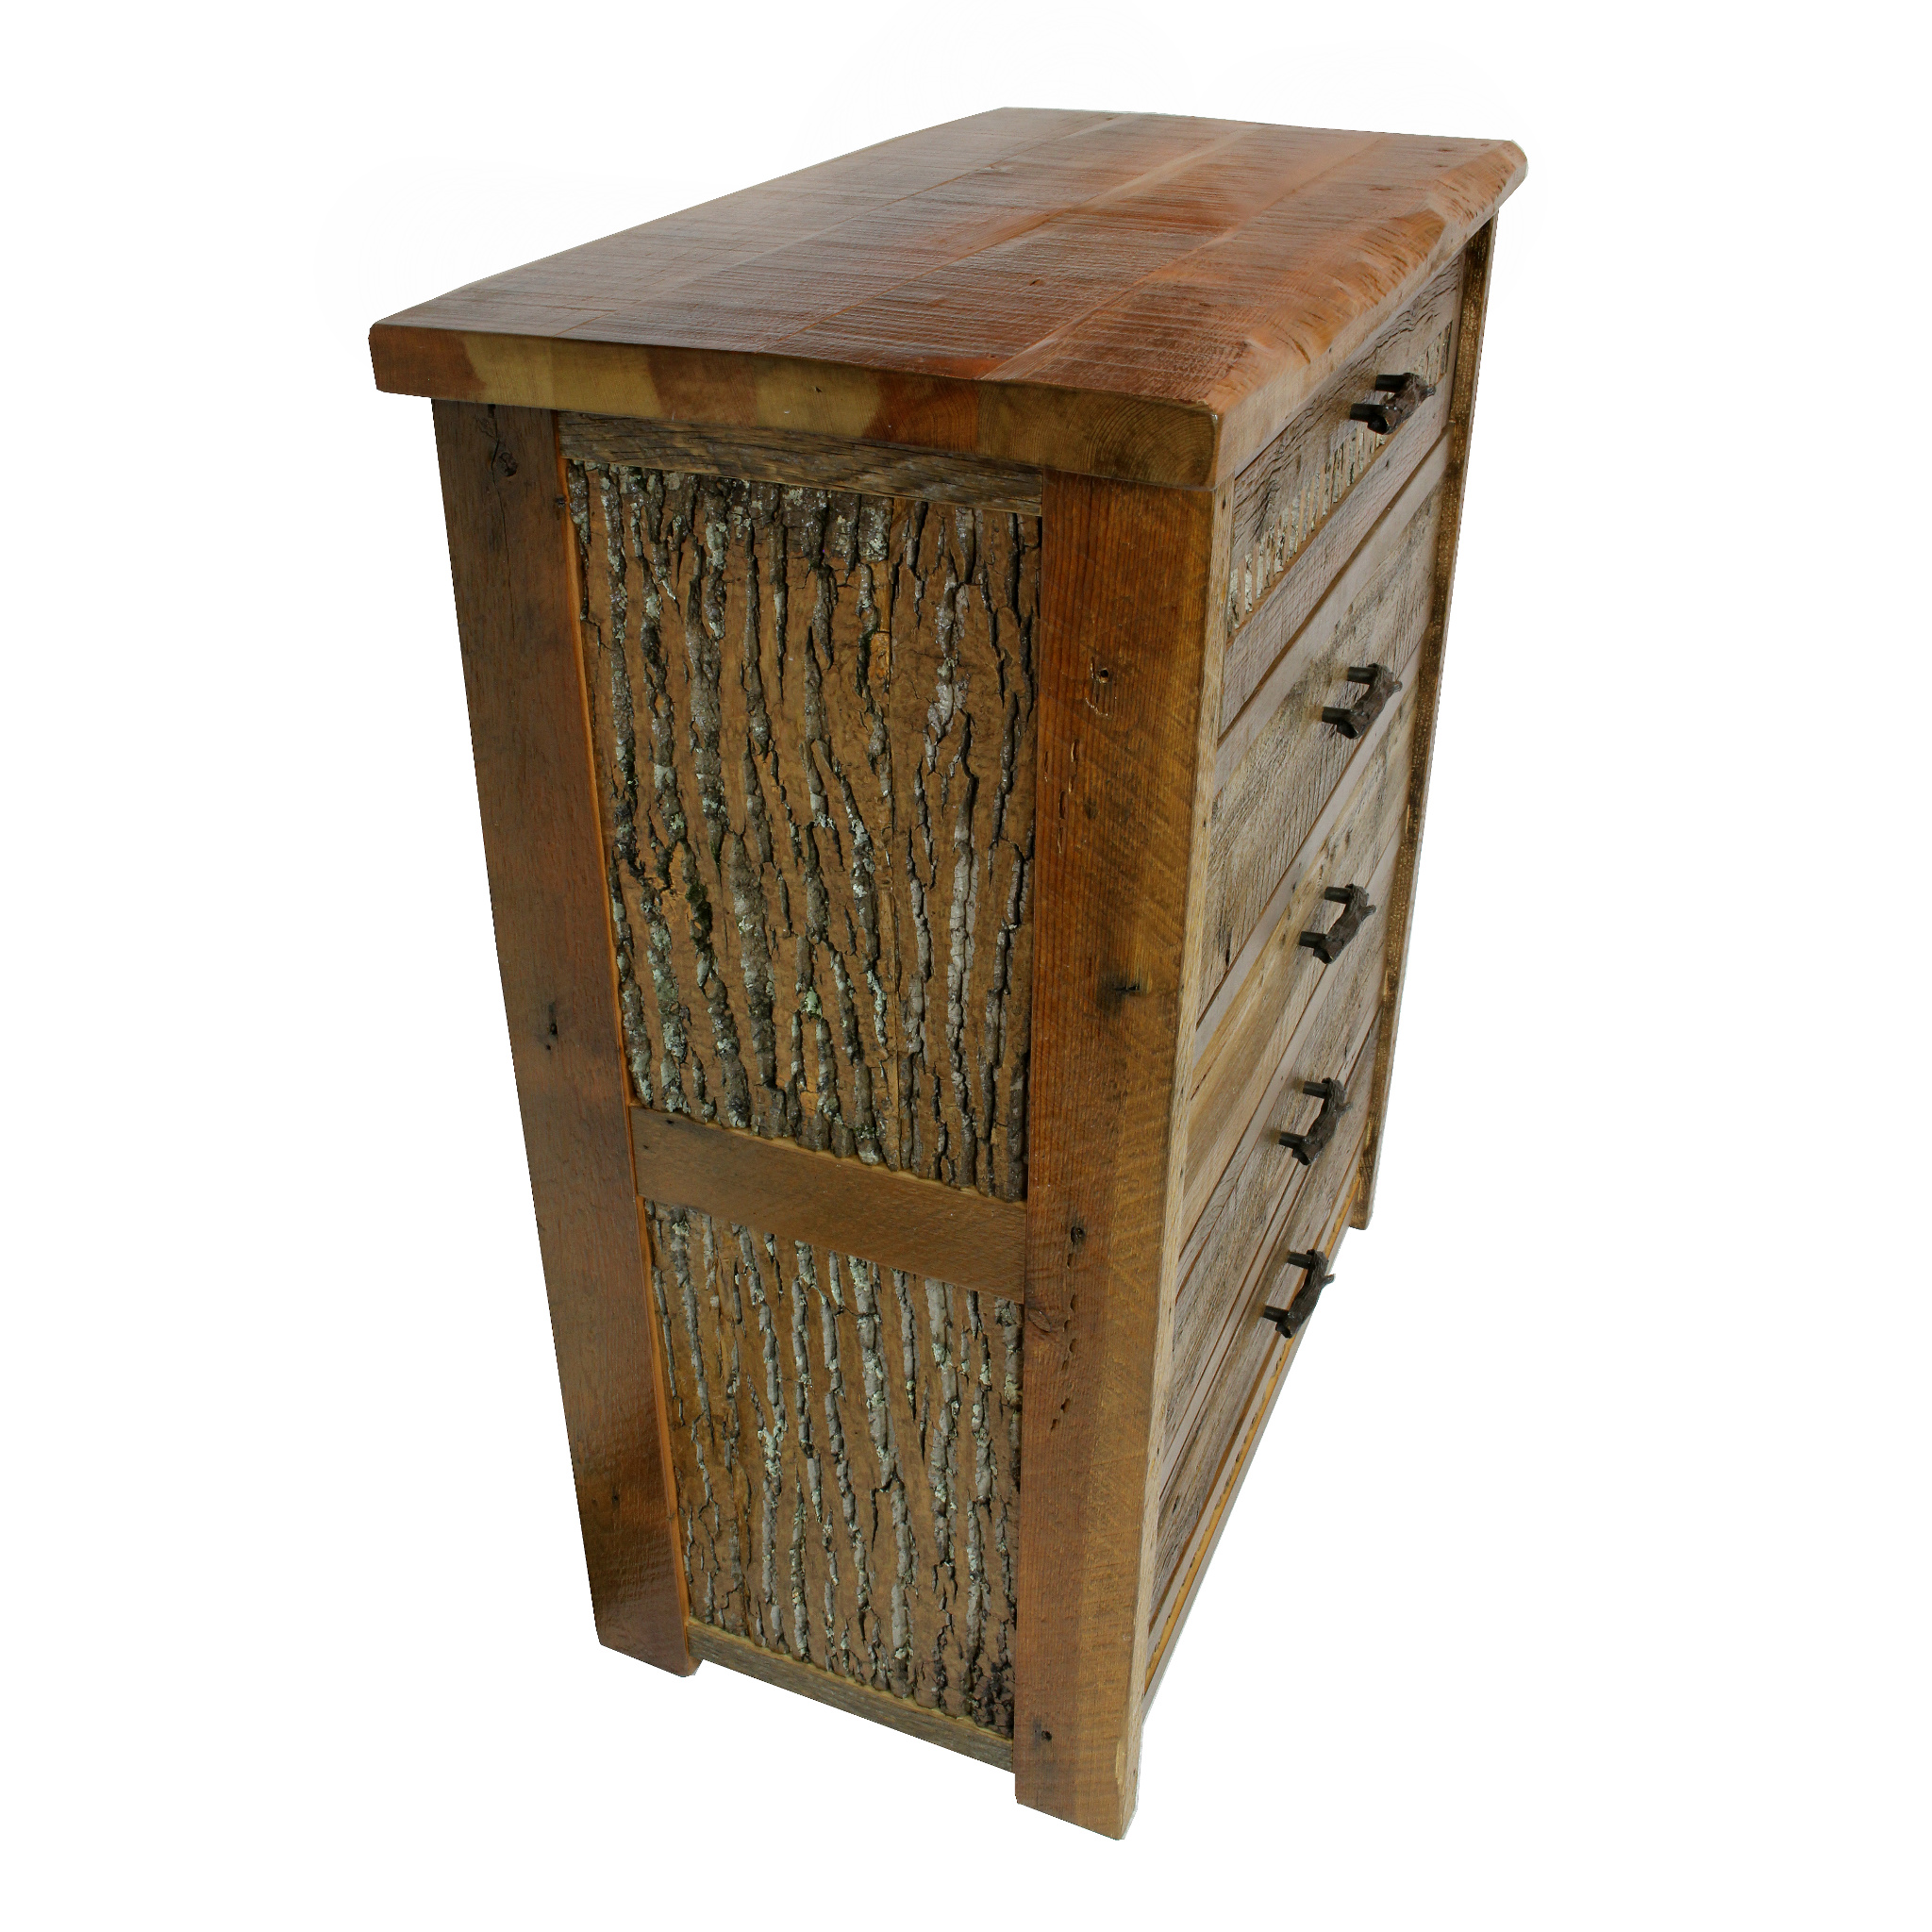 mountain side dresser  Shown in reclaimed barnwood. Available in 4, 5 or 6 drawers. Part of the Mountain Side collection.